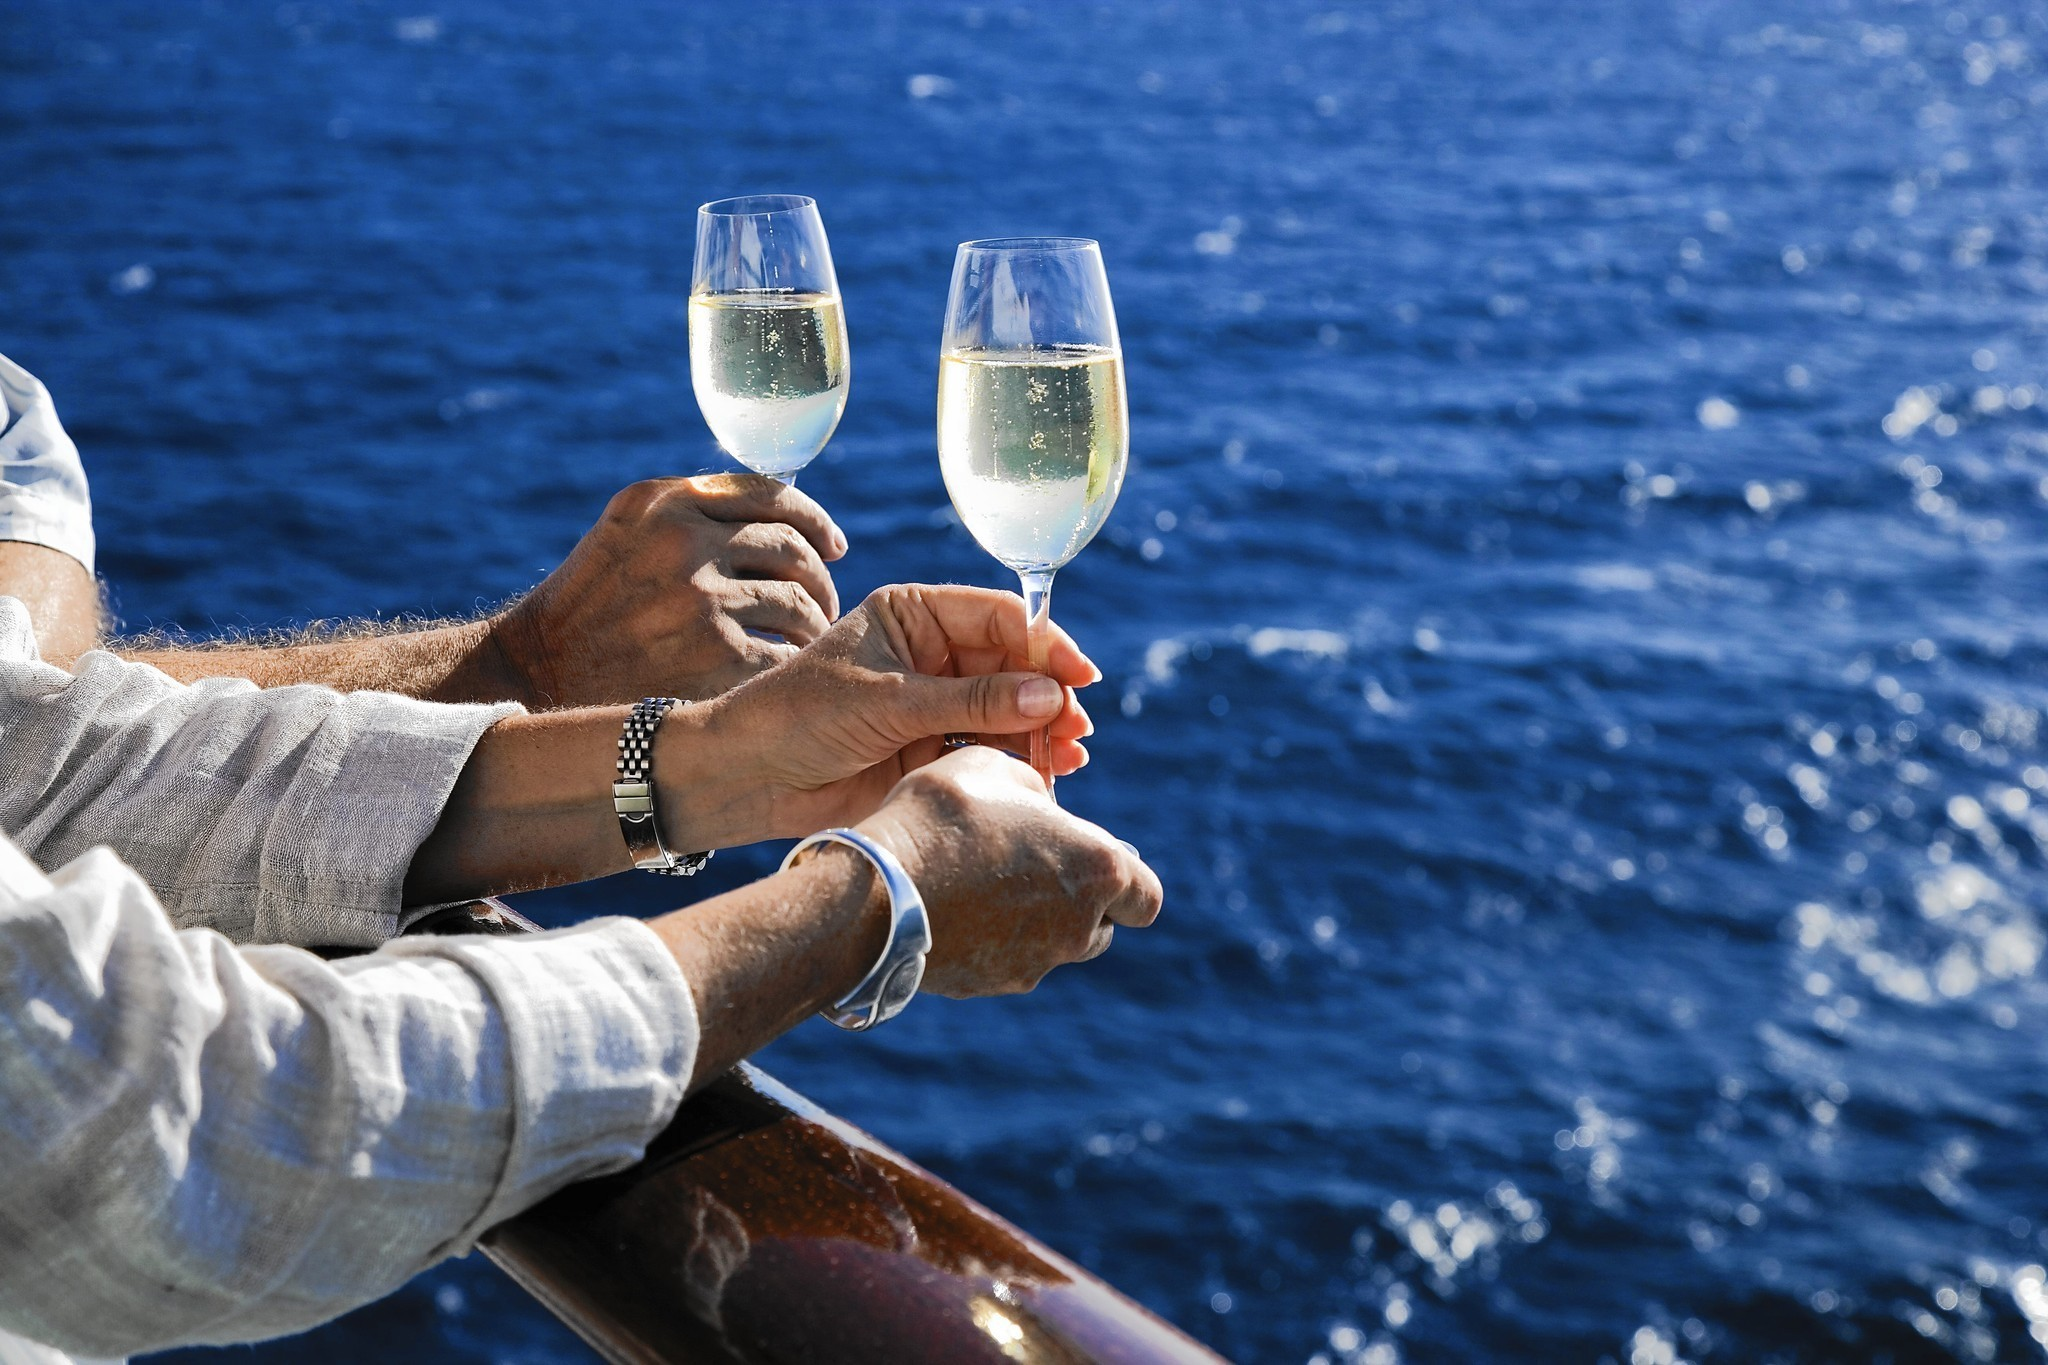 Cruise Lines Crack Down On Boarding With Beverages